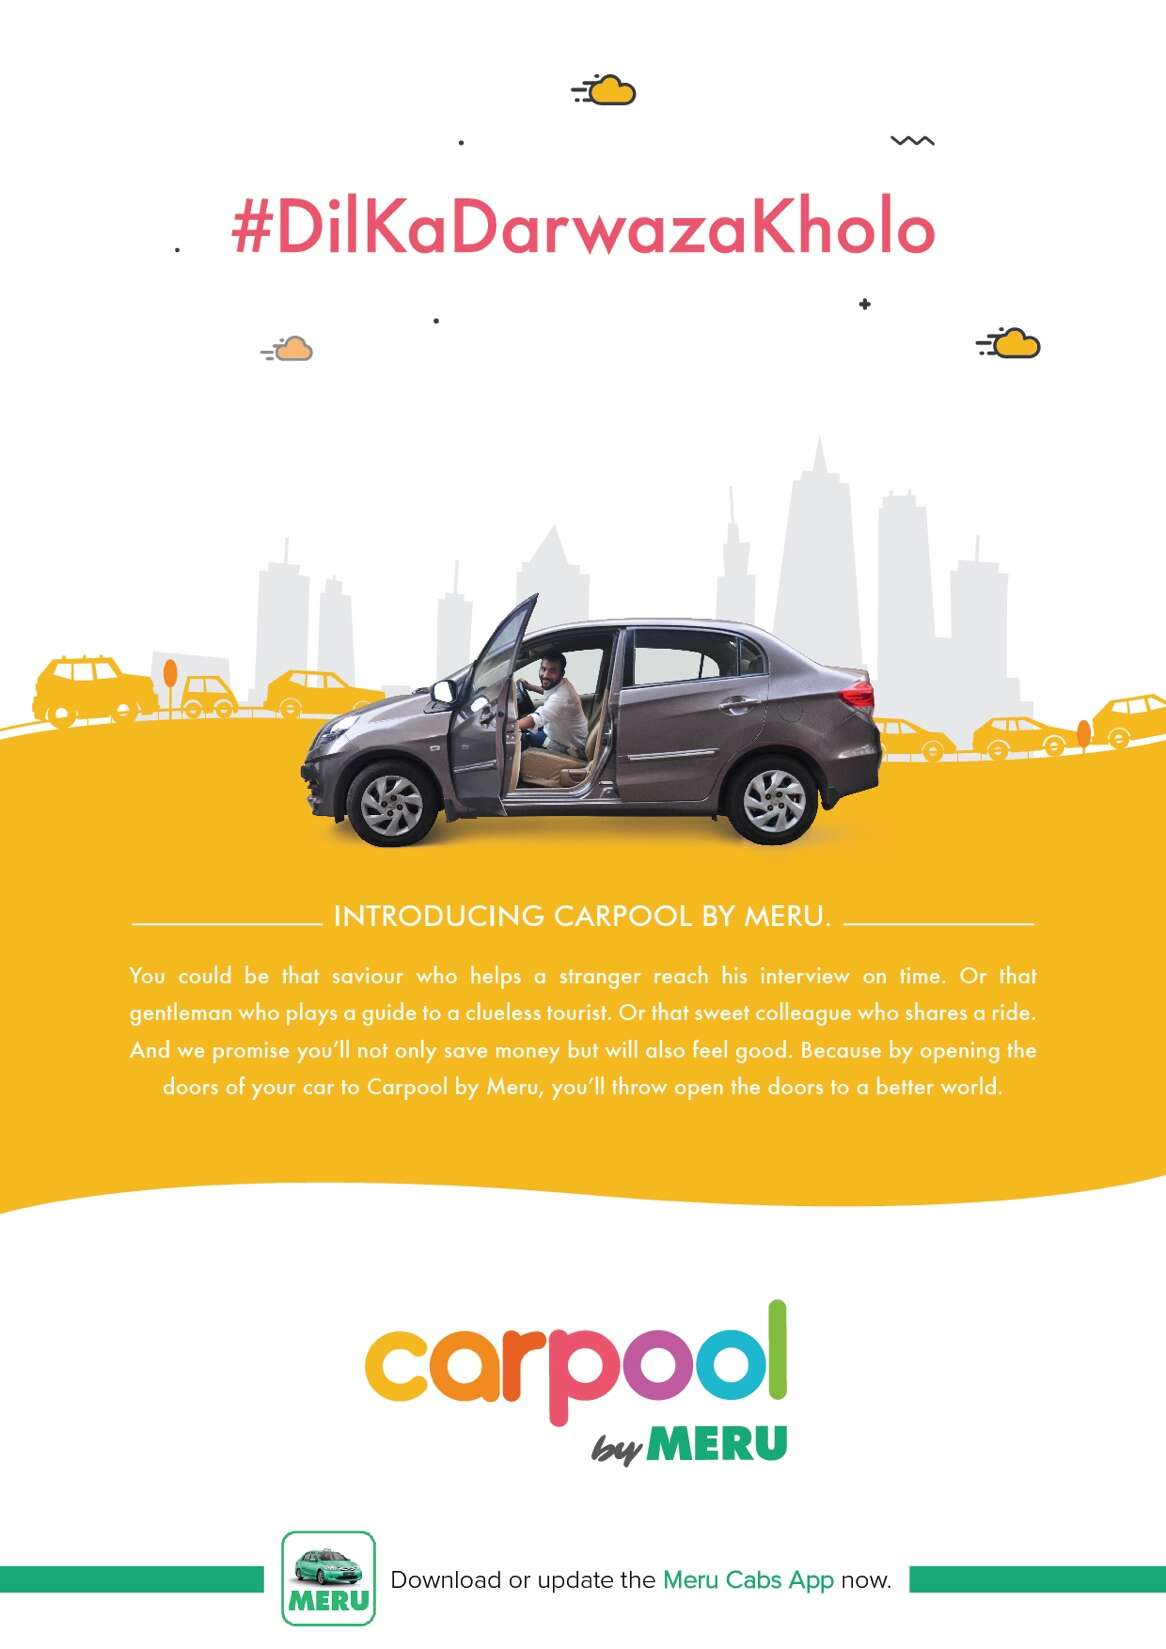 Top 10 Carpool Apps in India for 2019 - Why Carpooling is Dubious